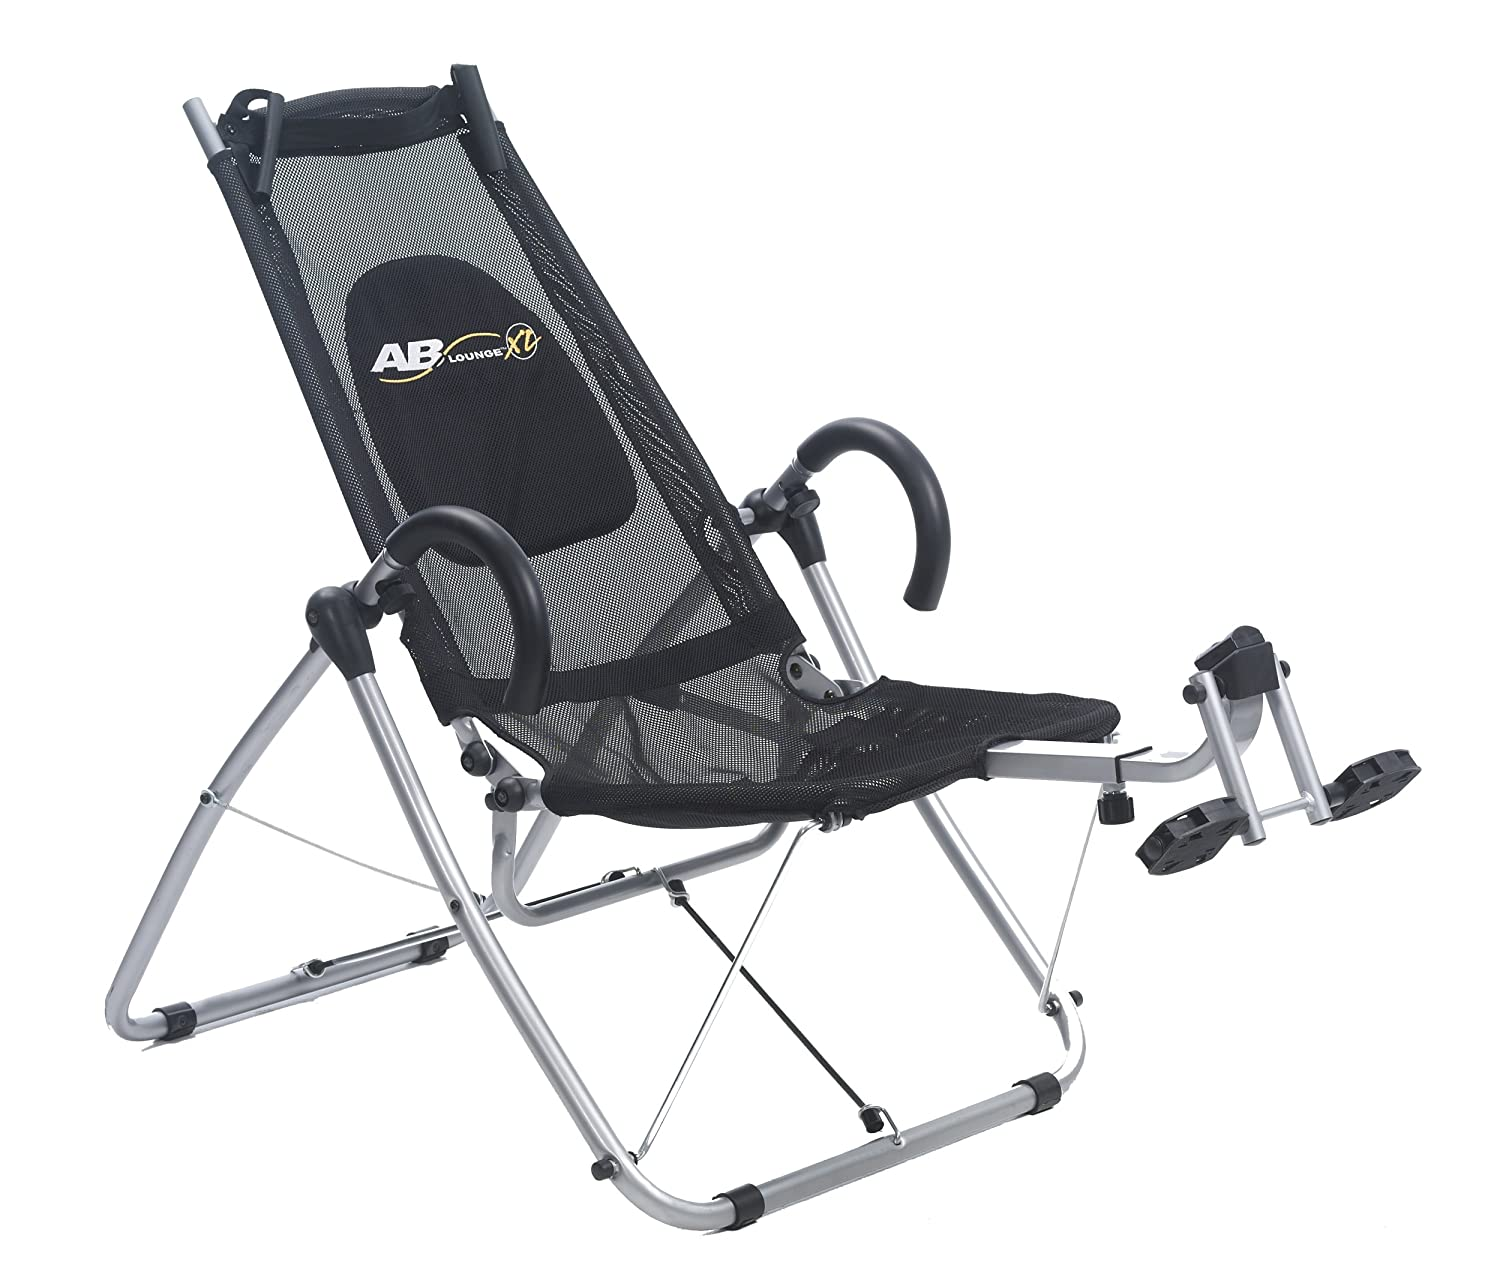 sc 1 st  Amazon.com & Amazon.com : Ab Lounge XL : Abdominal Trainers : Sports u0026 Outdoors